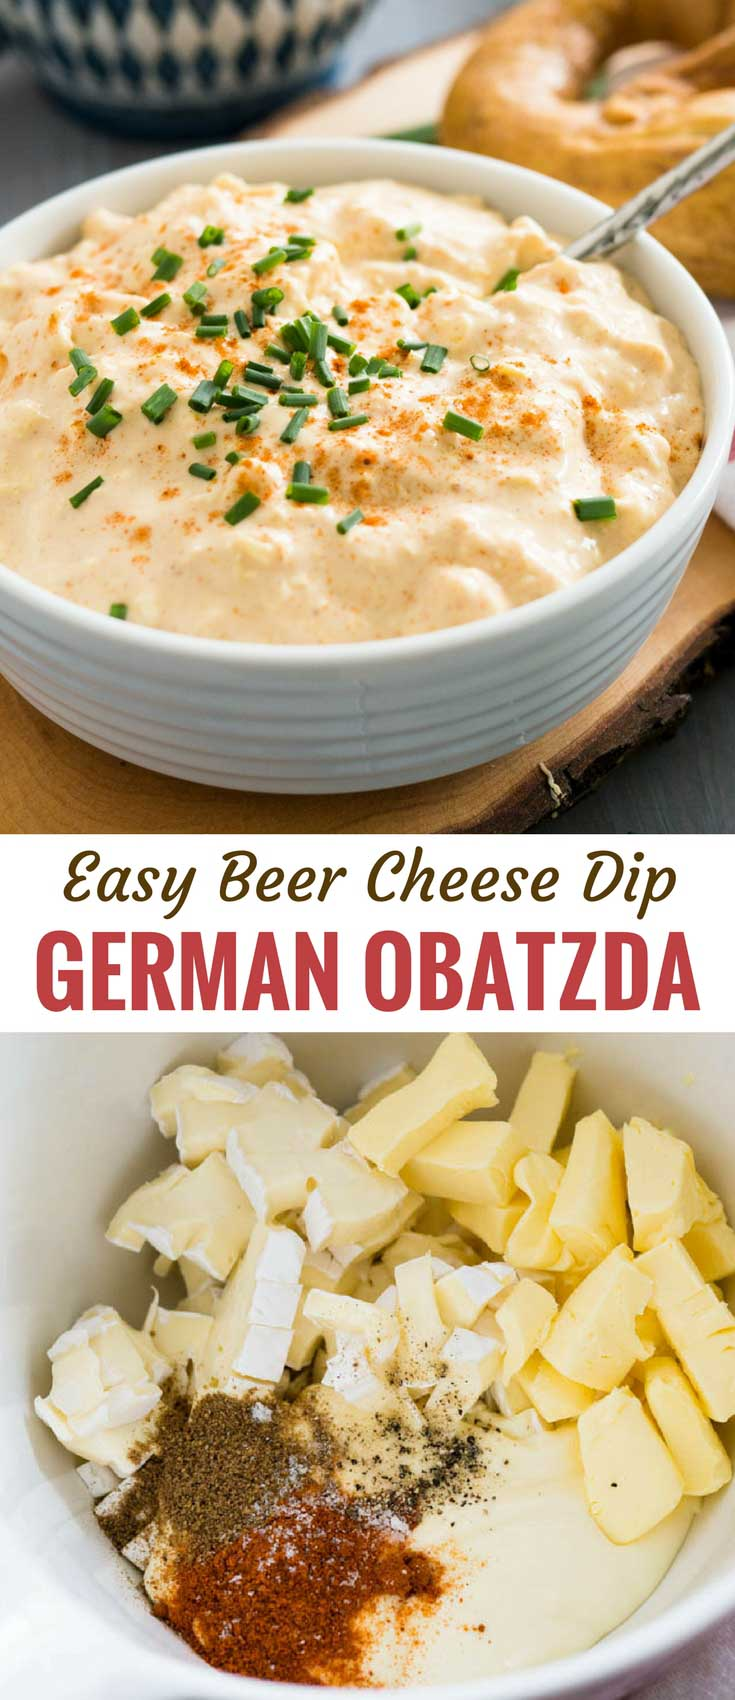 Obatzda, a flavorful German Beer Cheese Dip, is a beer garden classic made with camembert cheese, butter, and beer! This easy cheese dip can be made ahead and makes a delicious appetizer or snack with pretzels or rustic bread. Perfect for your next Oktoberfest party!